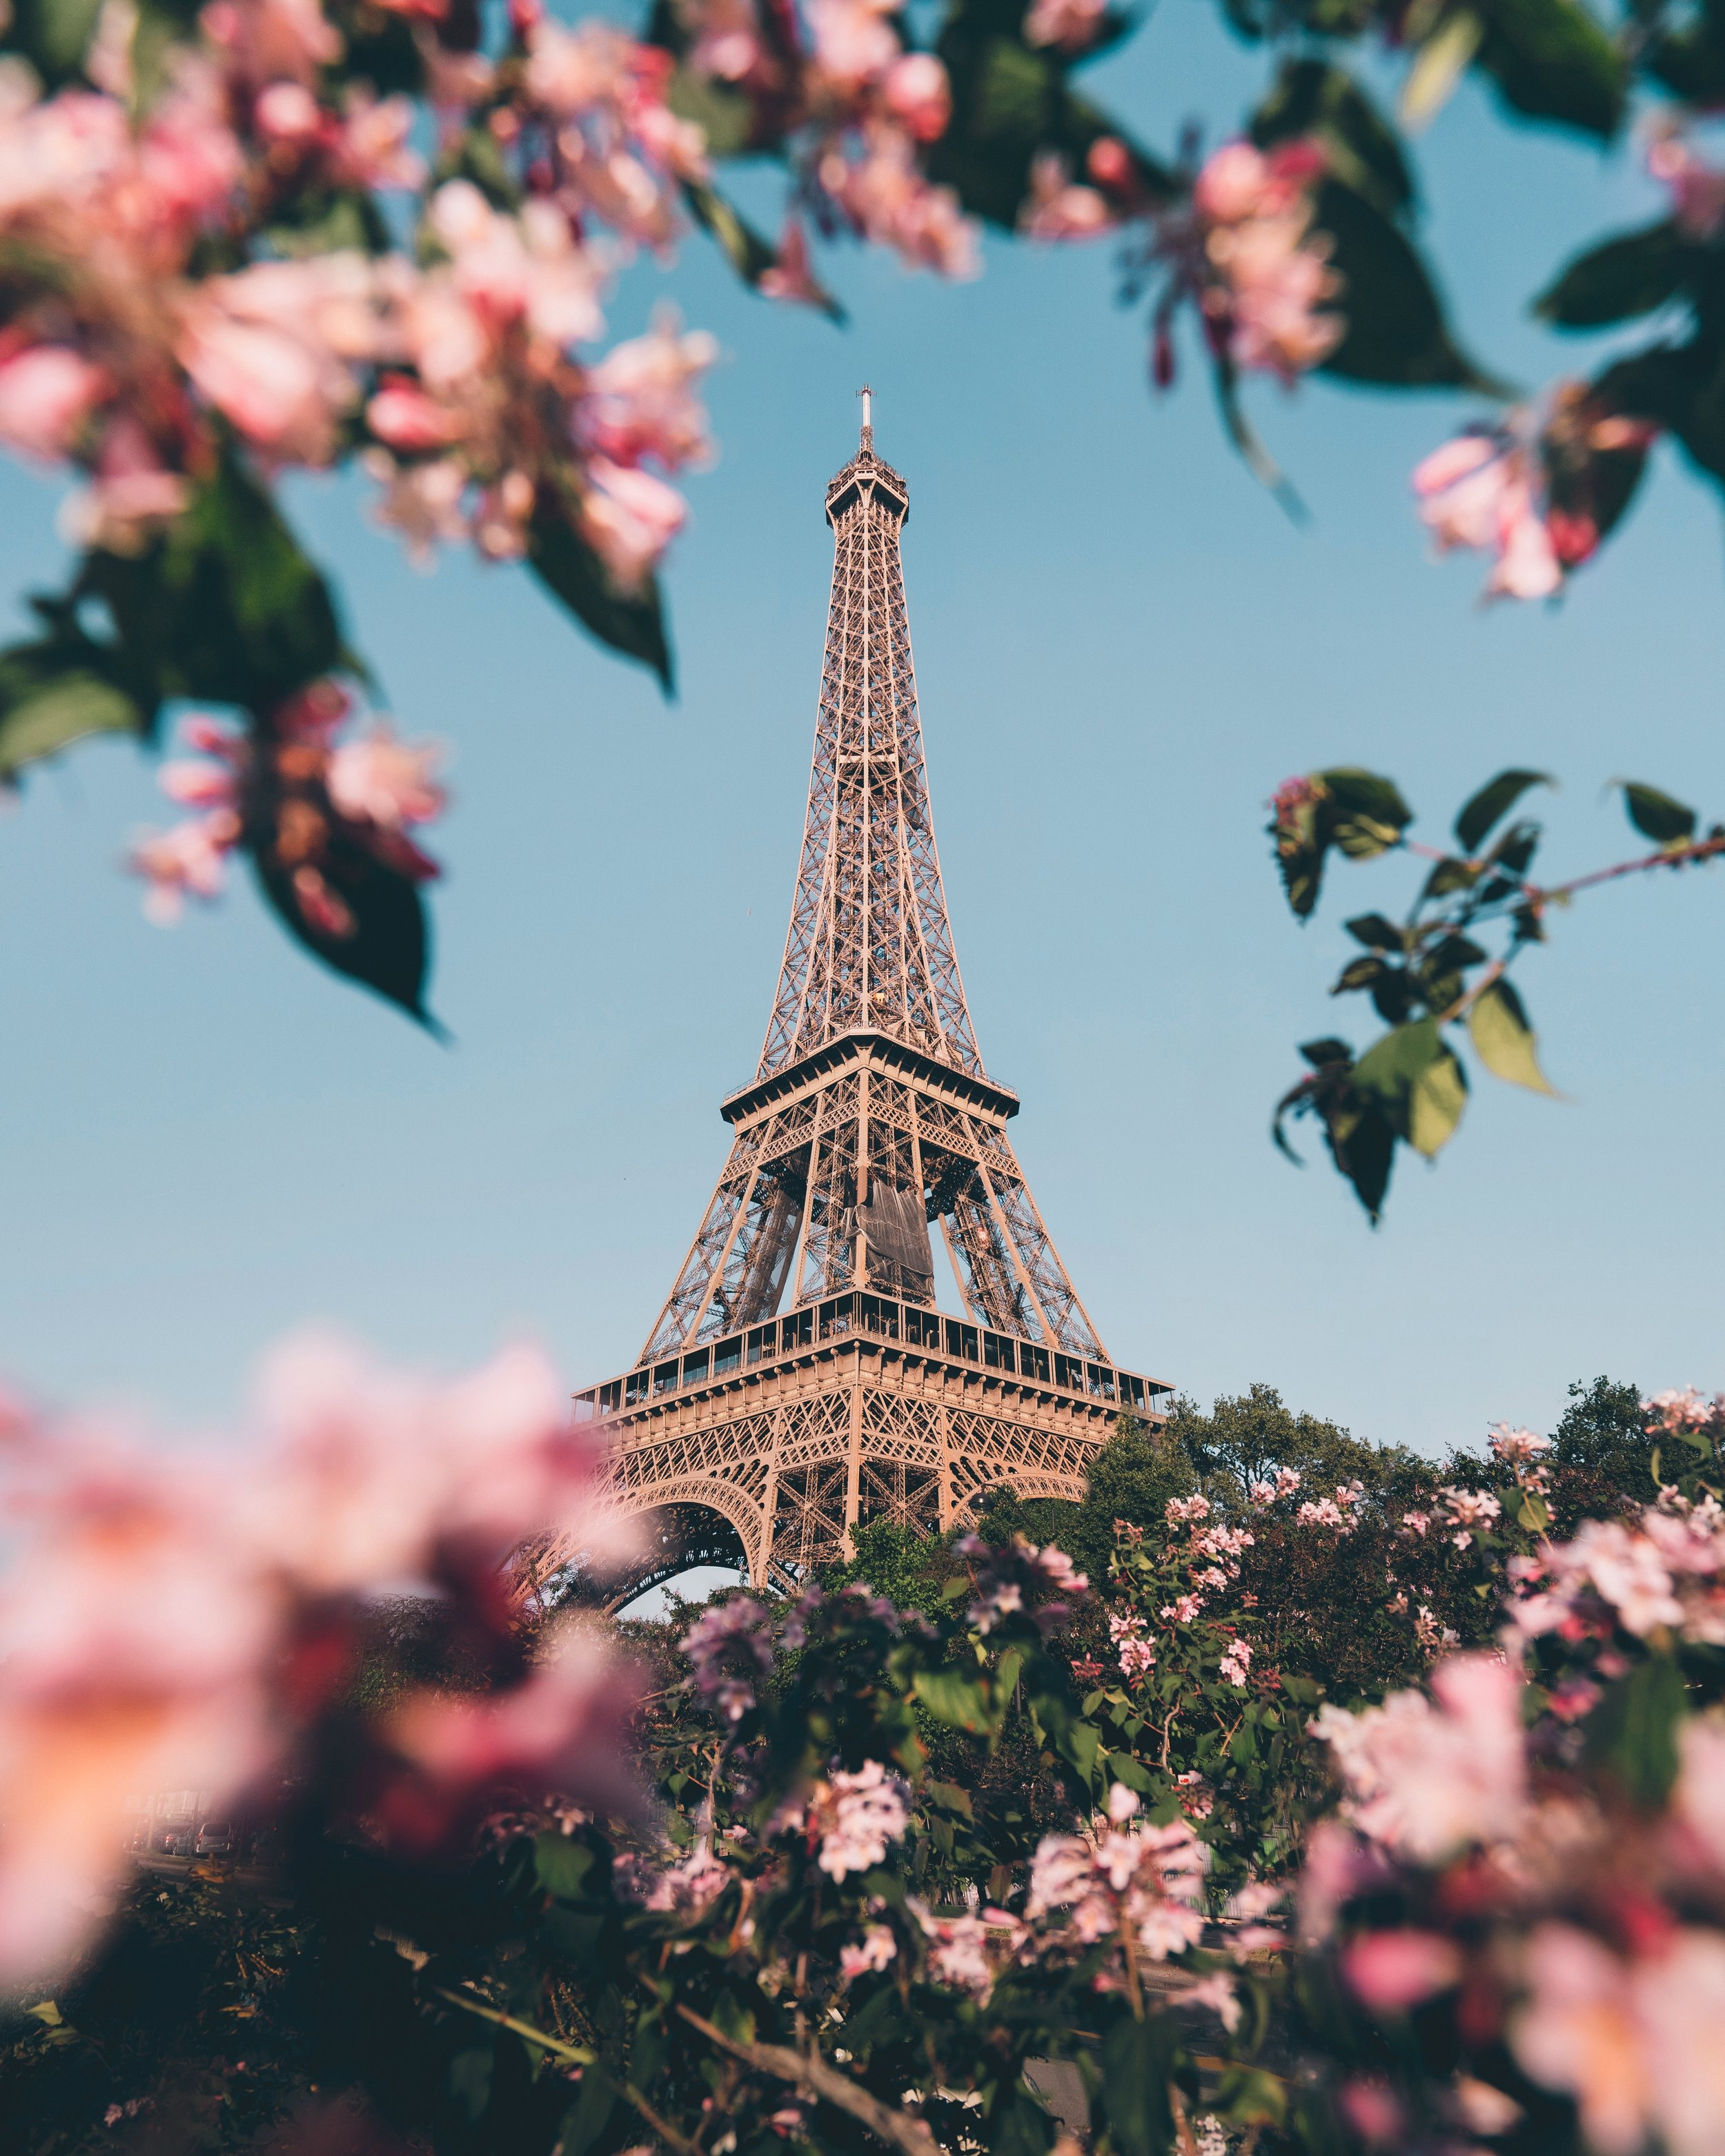 Eiffel Tower Photo by Jack Anstey - Unsplash